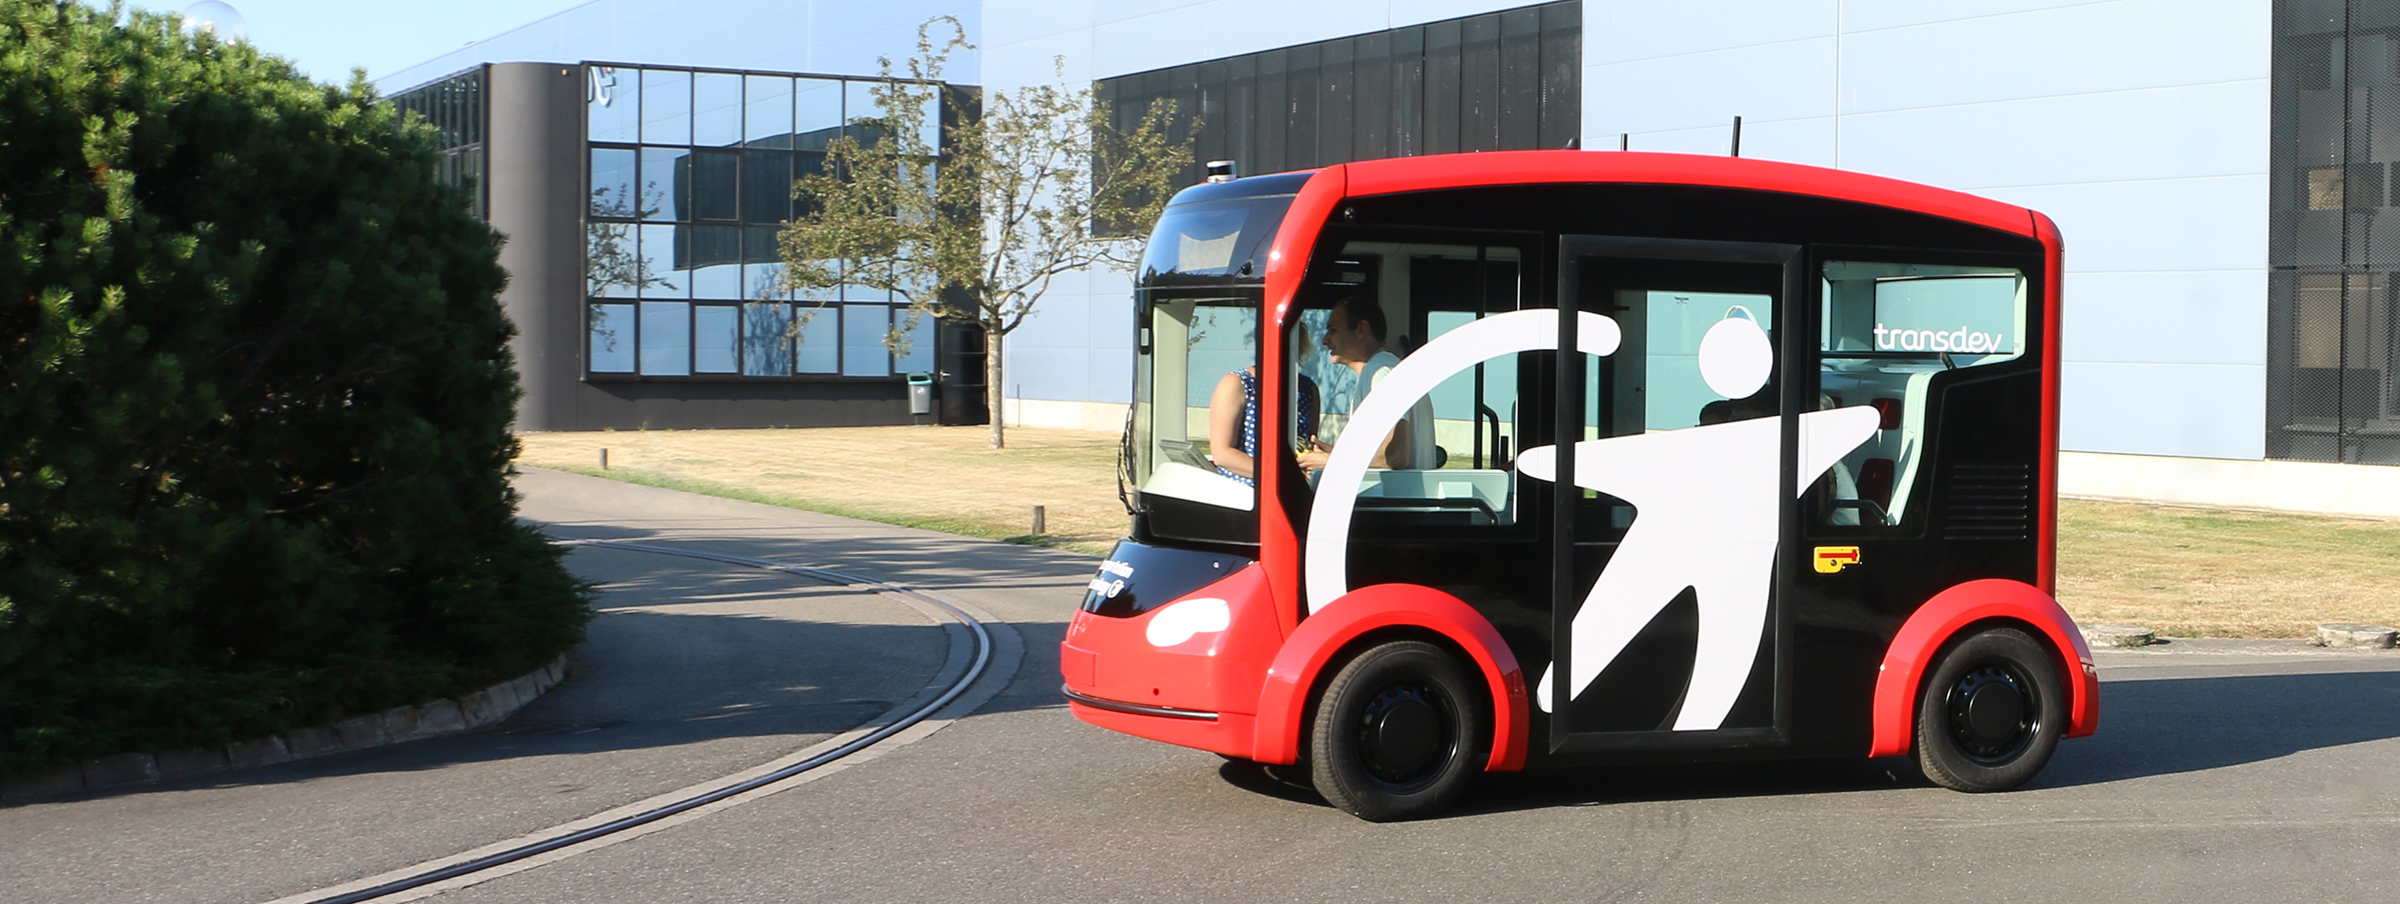 Electric and autonomous shuttle i-Cristal by Lohr moving in the industrial plant of Duppigheim, Alsace, France.